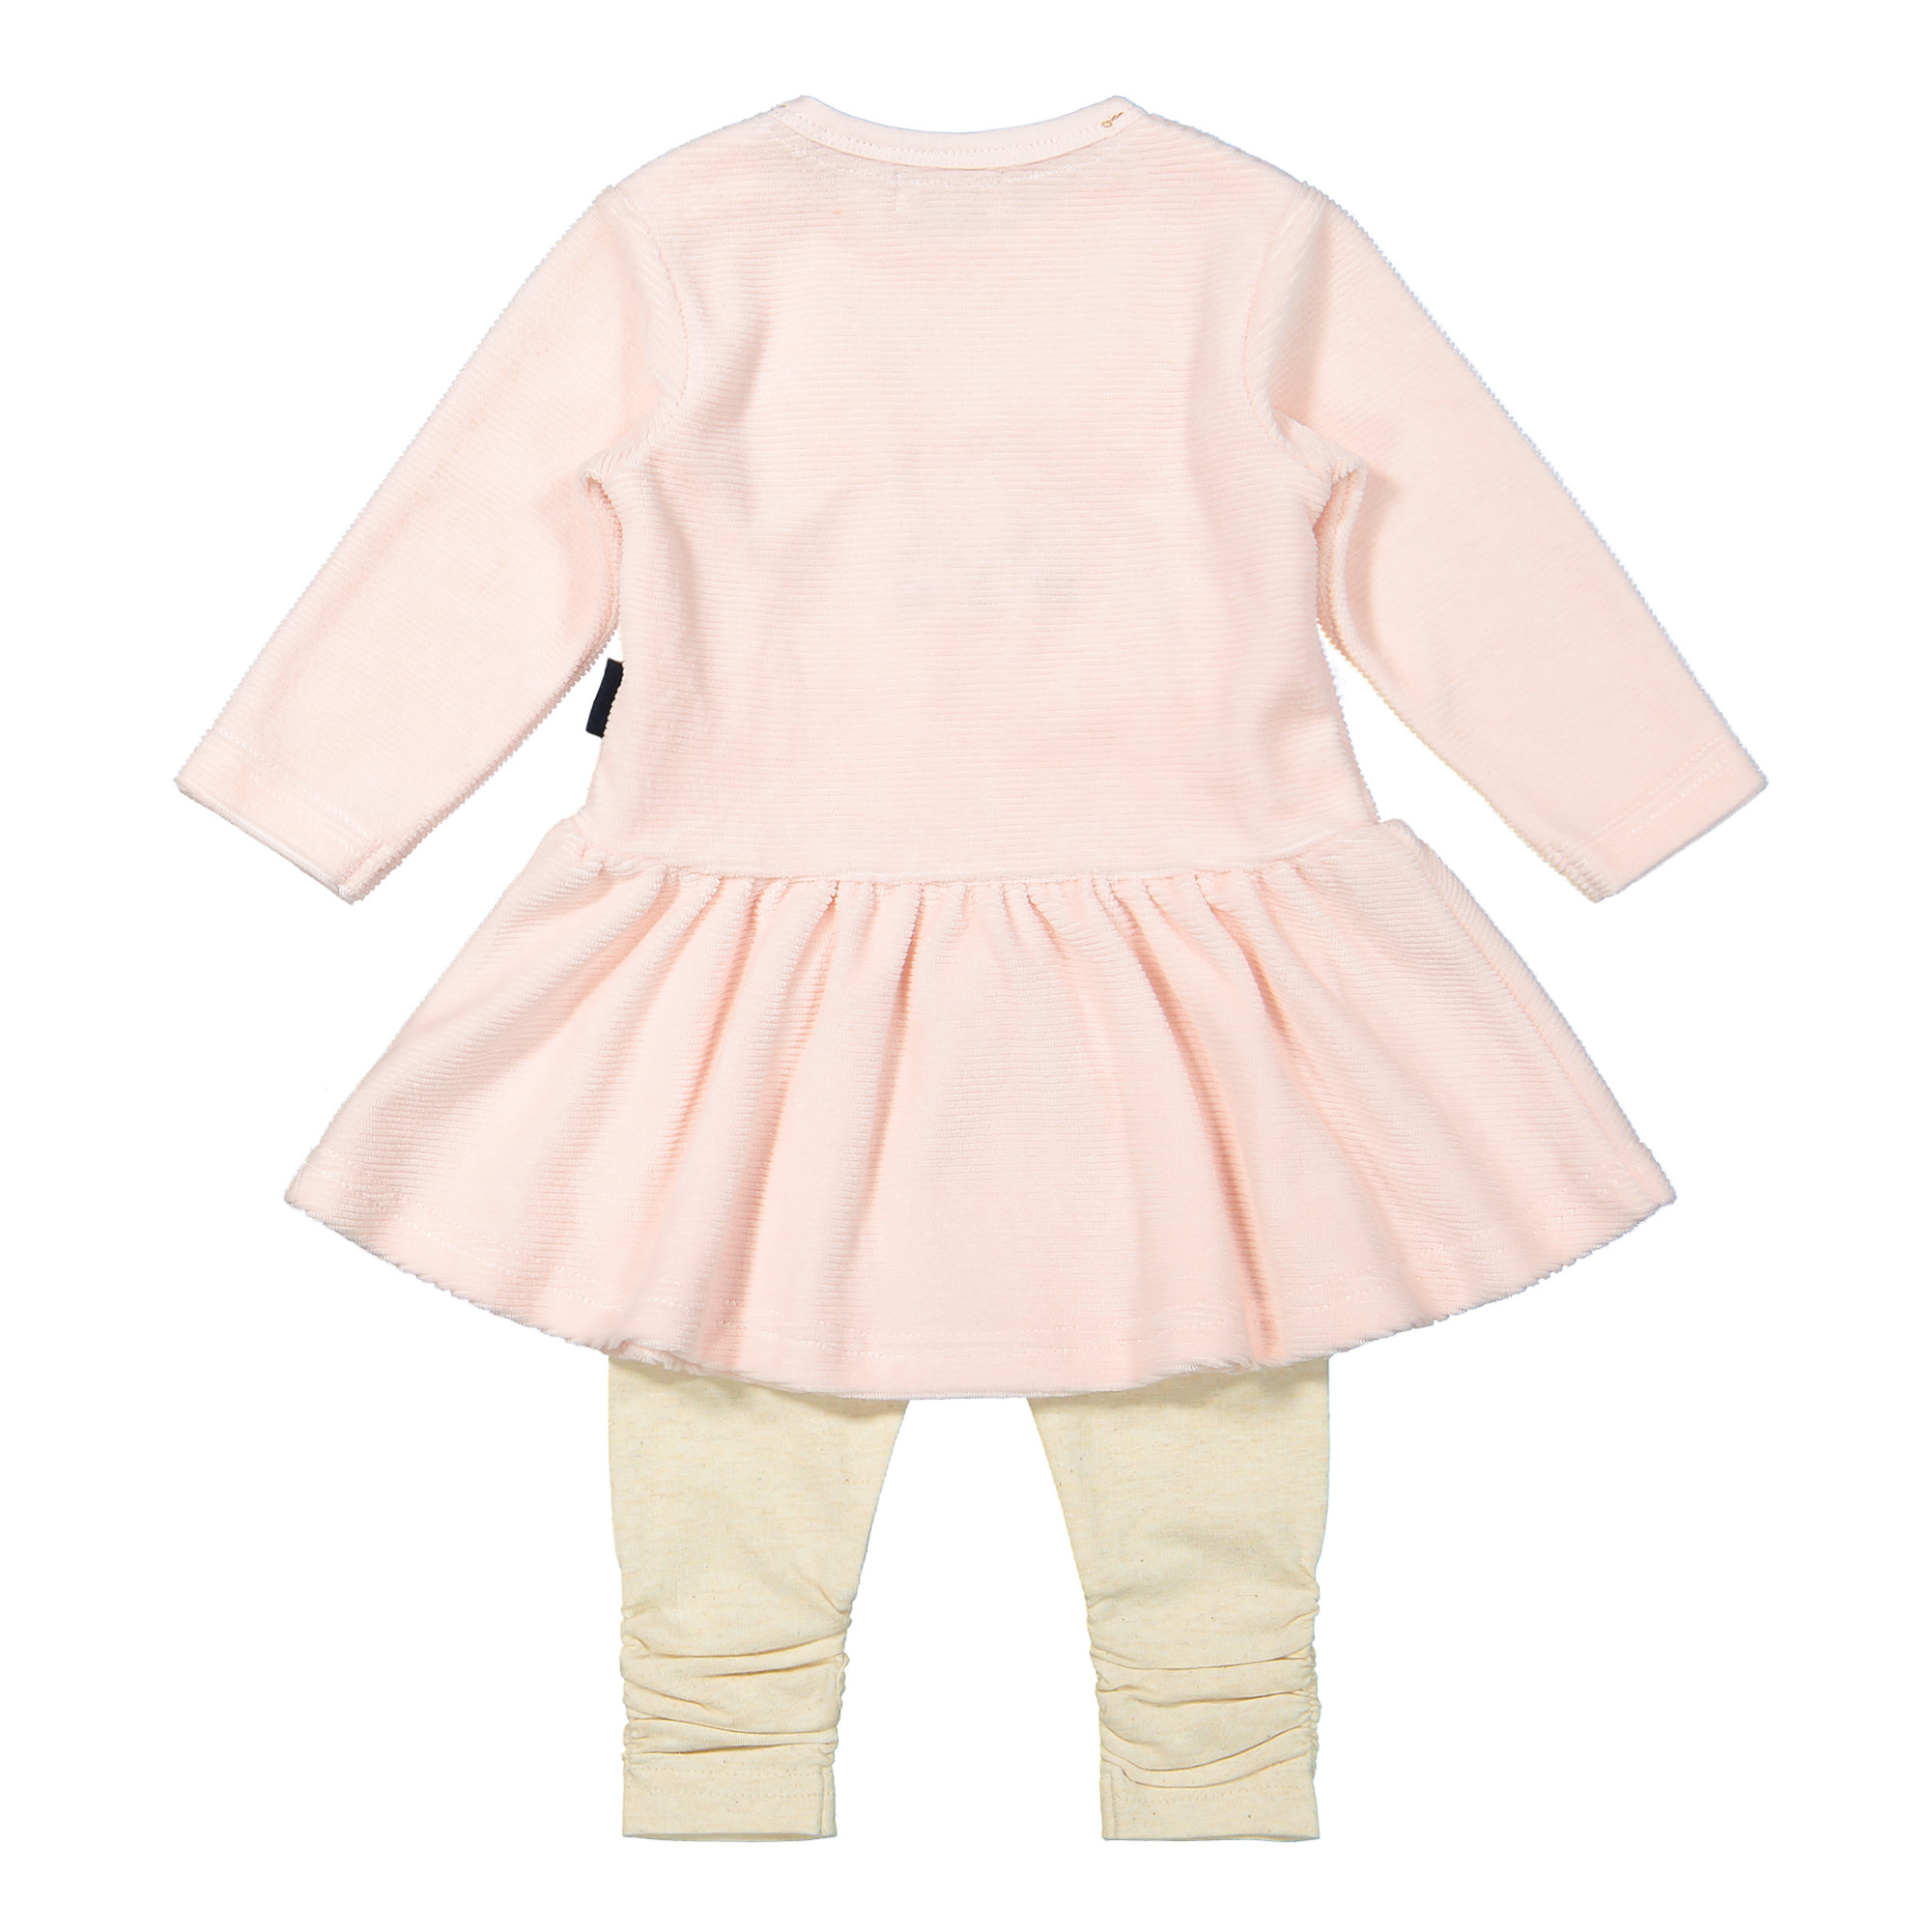 Ribbed Pink Puppy Outfit